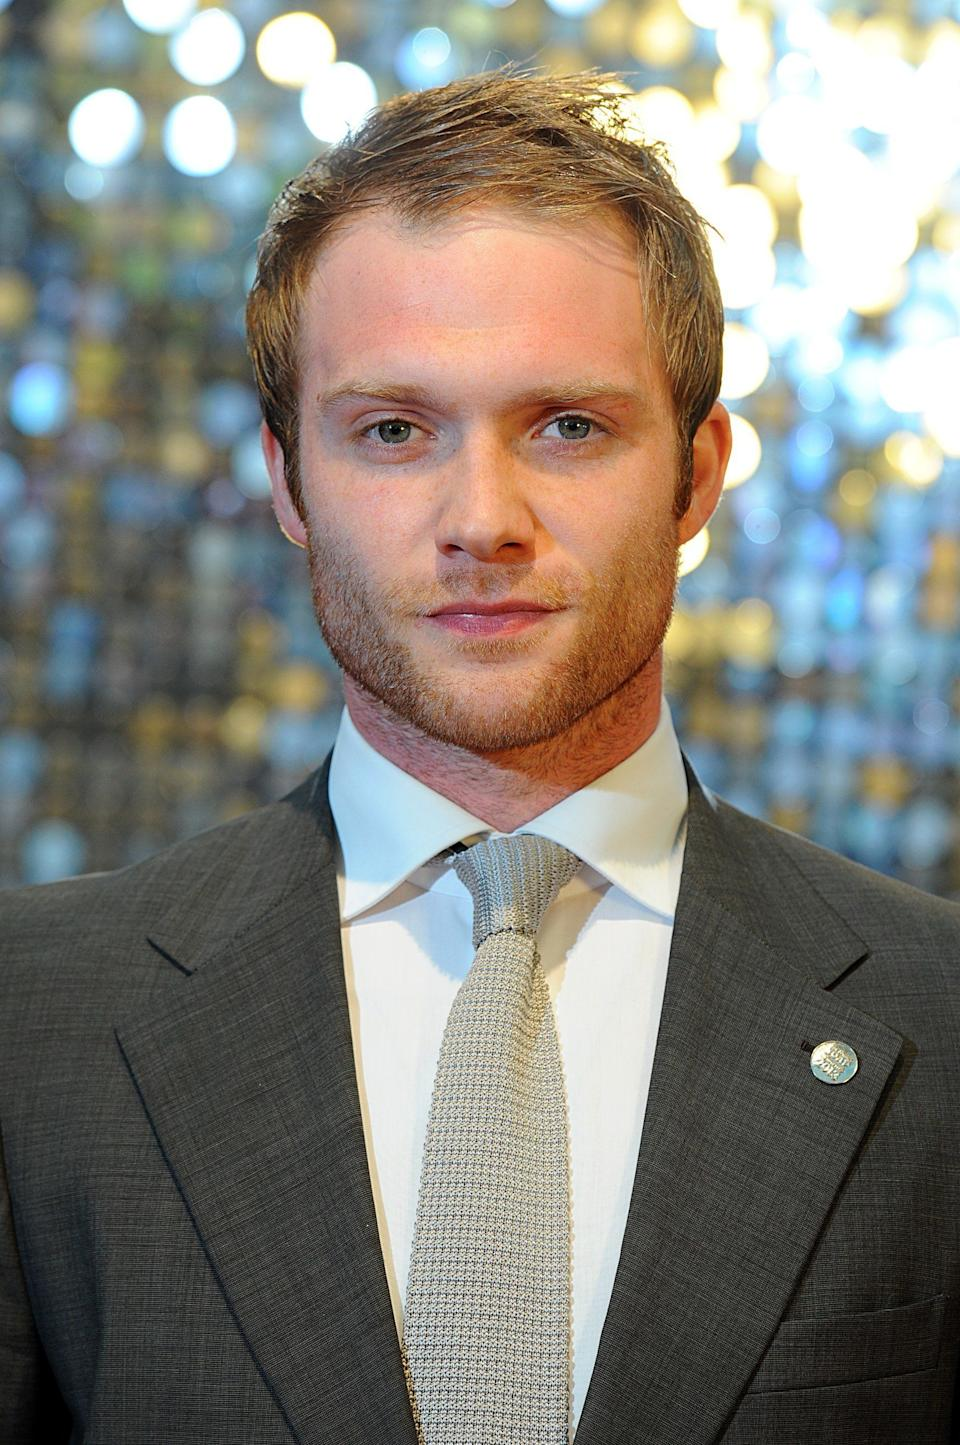 Chris Fountain had been starring on the small screen for just 3 years when he landed a role in 'Hollyoaks'.   Years later he turned up in 'Corrie' as Tommy Duckworth. before leaving in 2013.